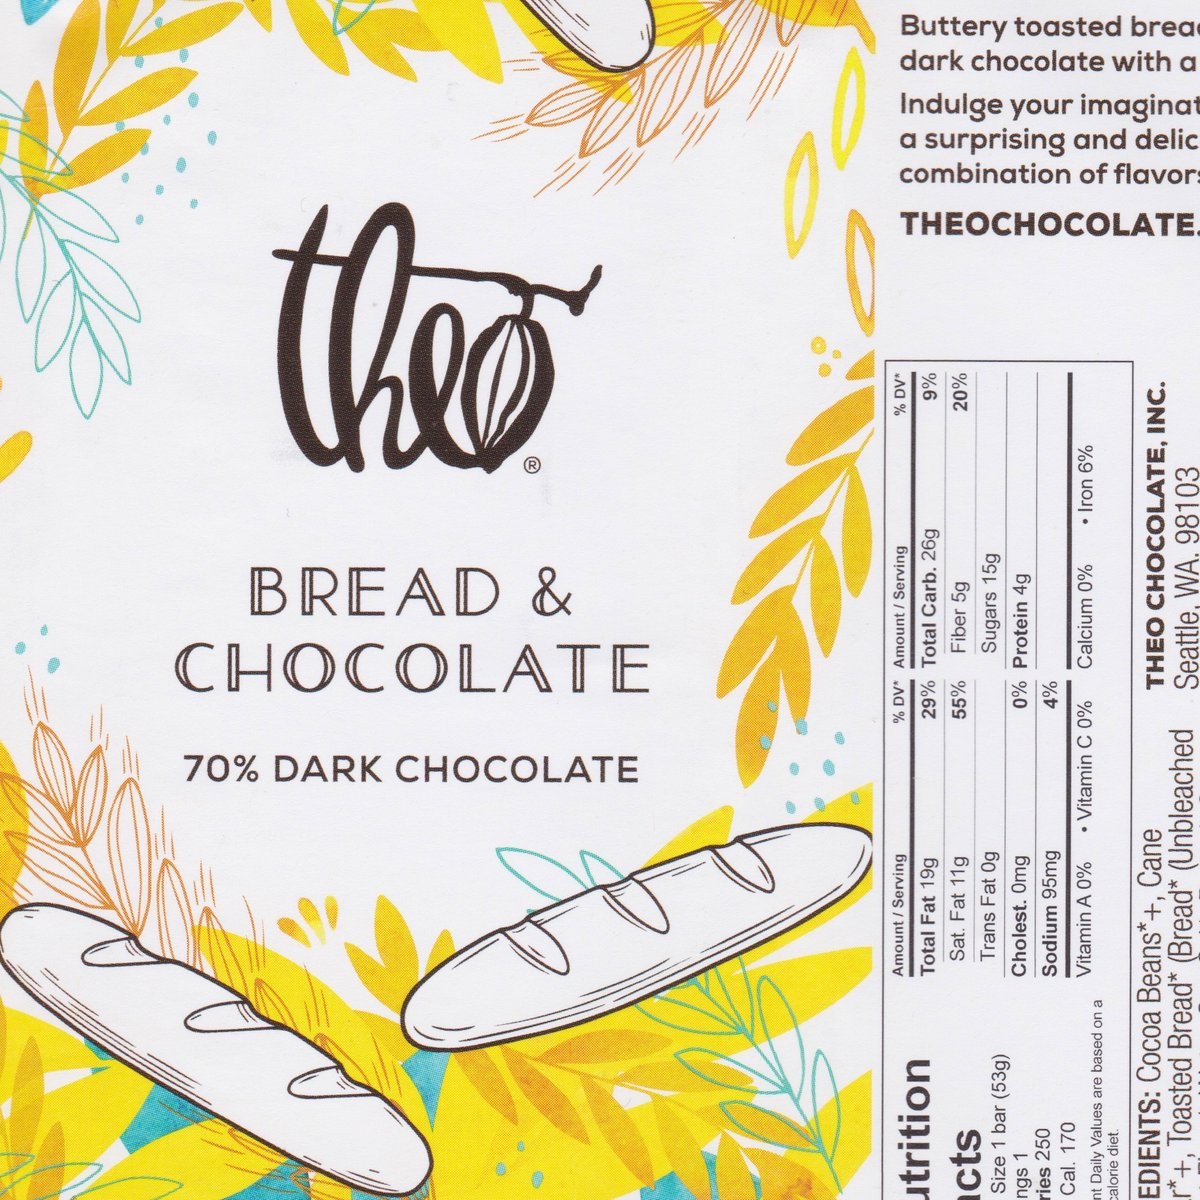 Theo dark chocolate & buttery toasted bread crumbs